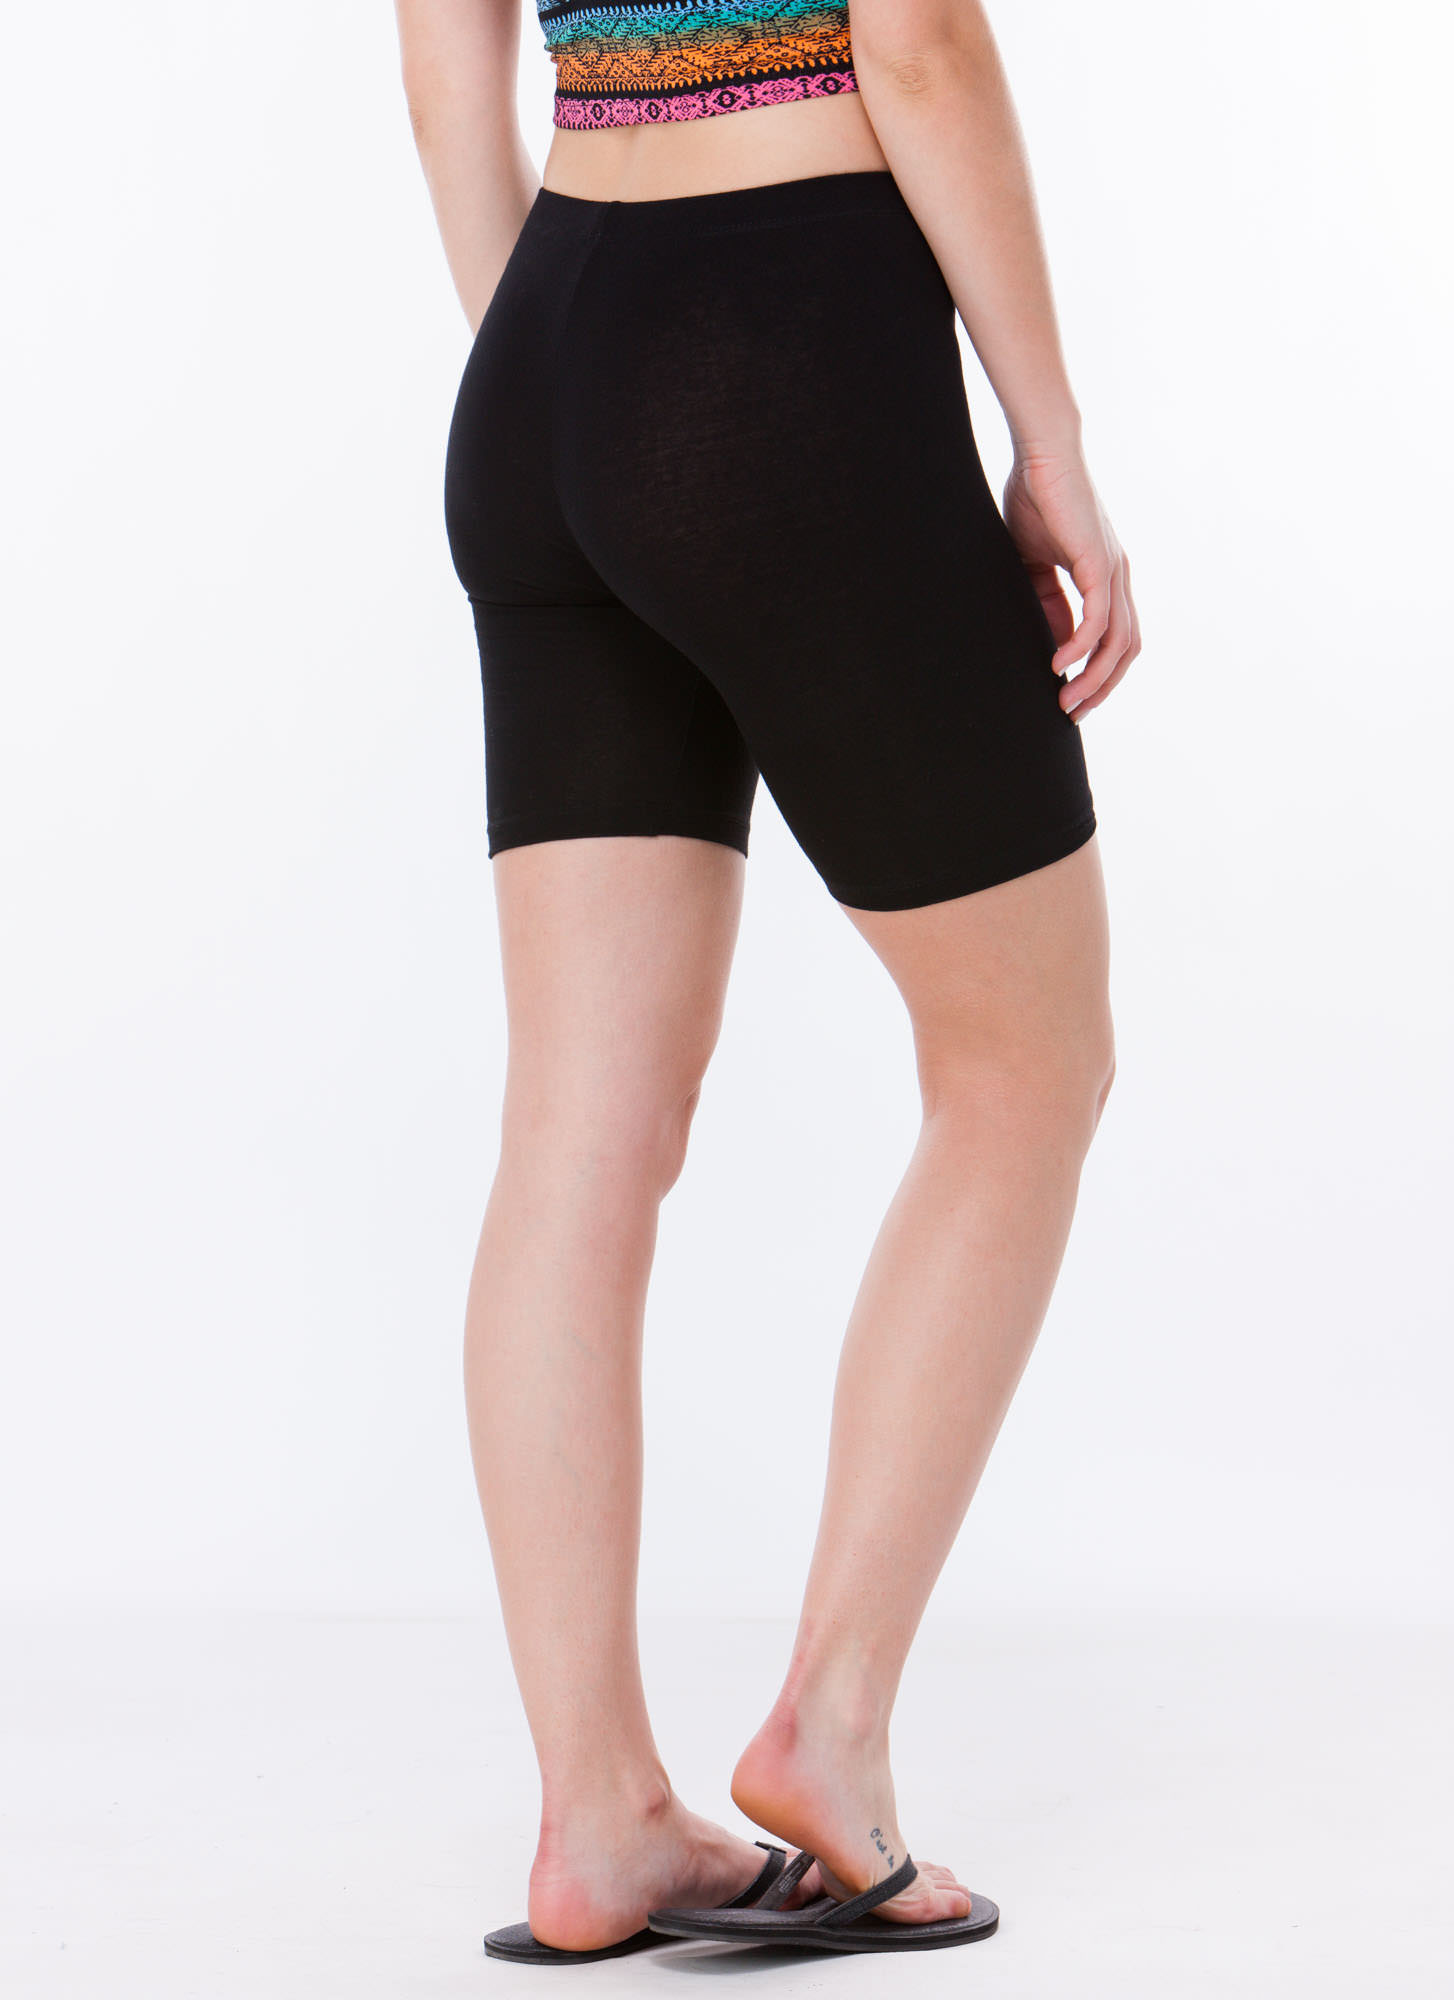 Do Me A Solid Stretchy Biker Shorts BLACK